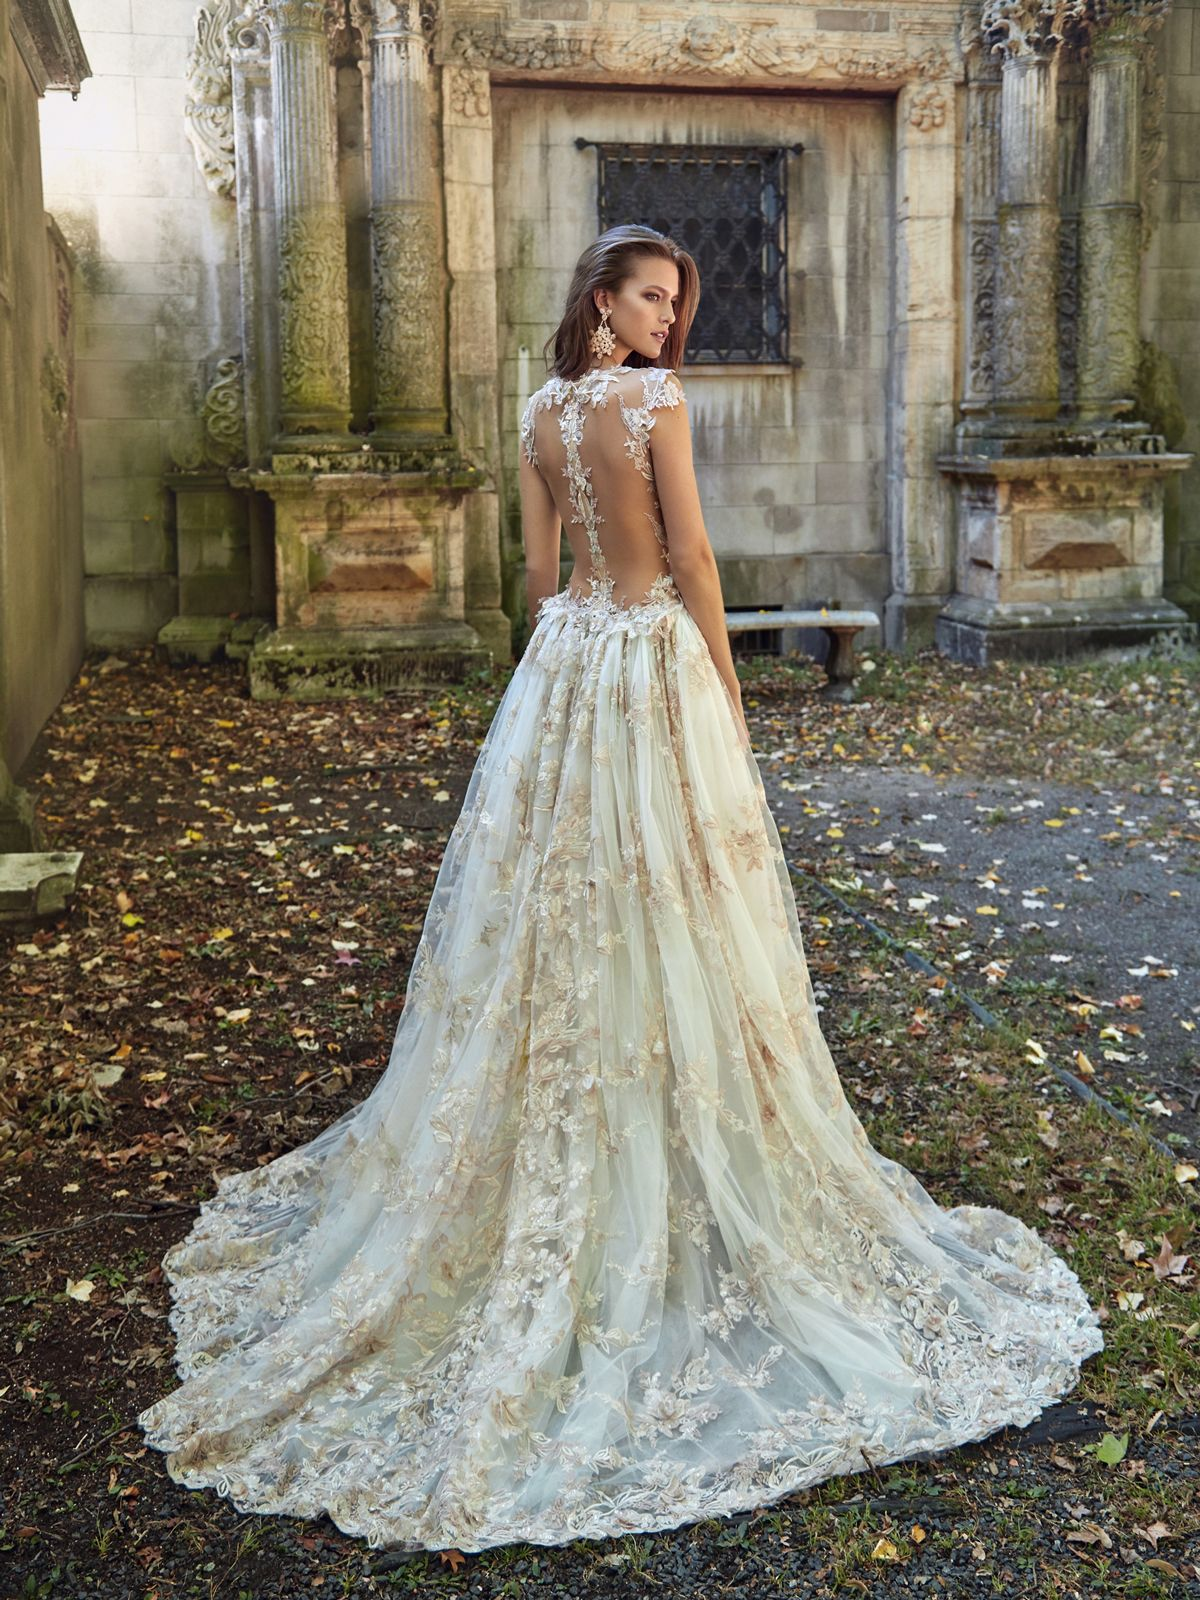 Galia Lahav Lily Rose Princess Silhouette In A Multi Layered Sheer Dress Hand Liqued And Beaded Antique Shades